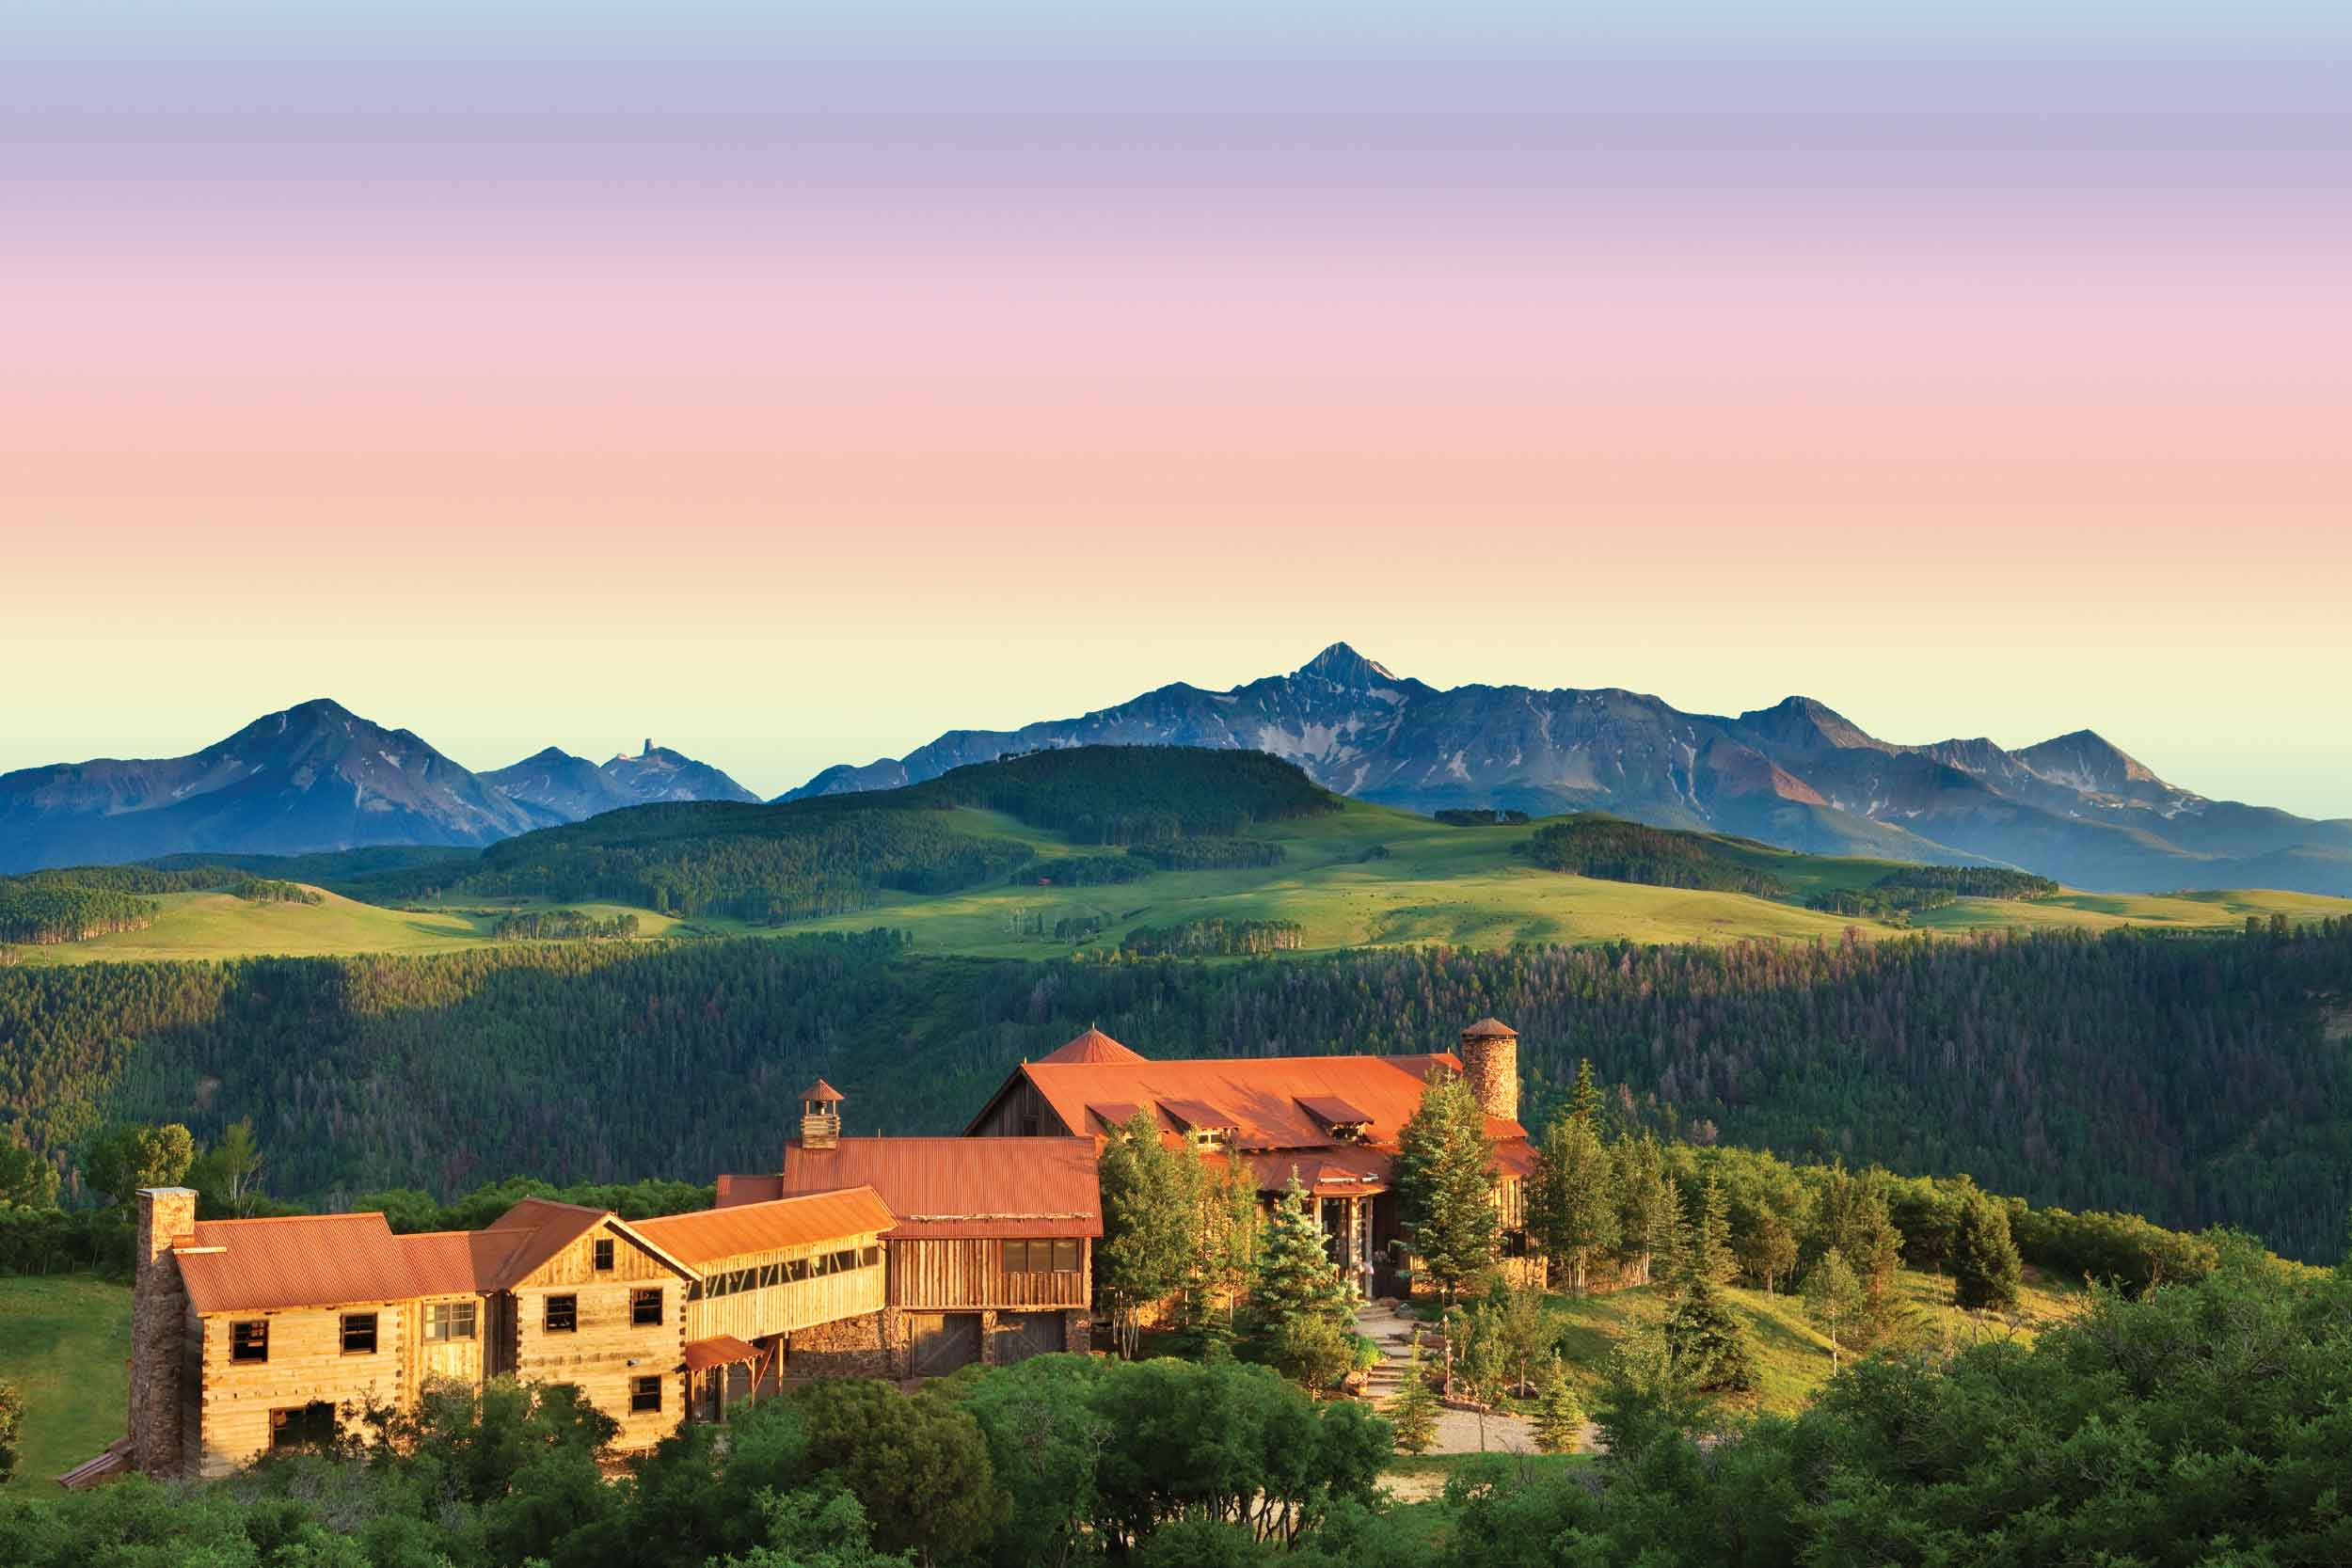 Perfectly at one with its natural environment in Telluride, Colorado's majestic Gray Head Wilderness Area, Catmando is a private, 35-acre compound at eye level with snow-capped Rocky Mountain peaks.